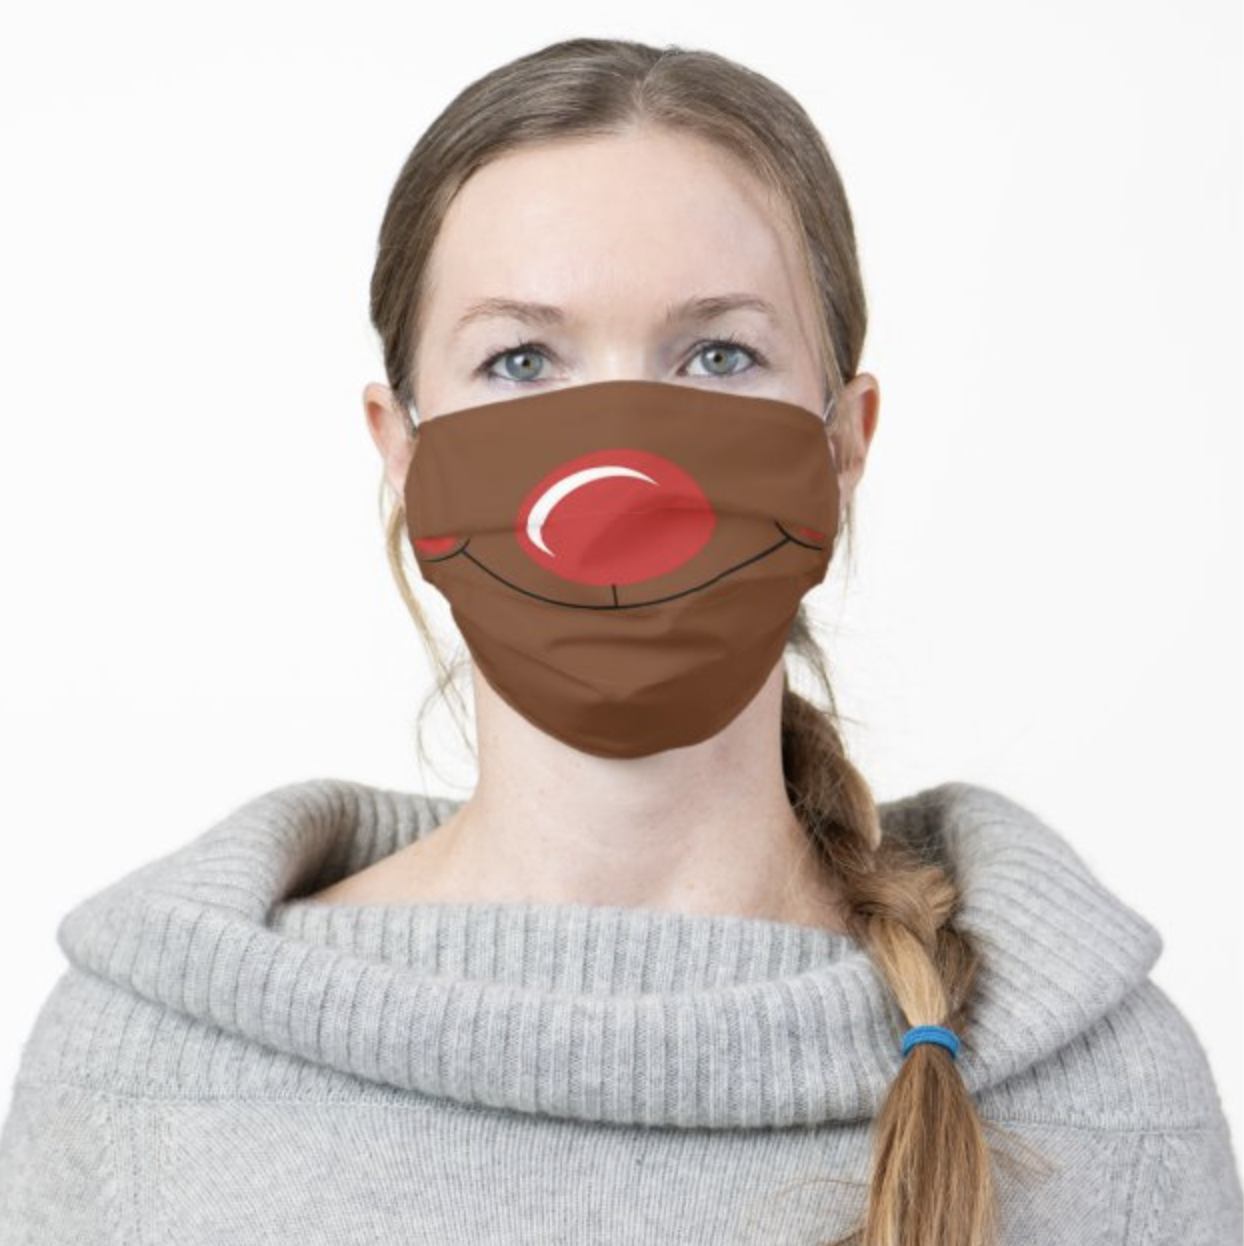 Model wearing Rudolph face mask